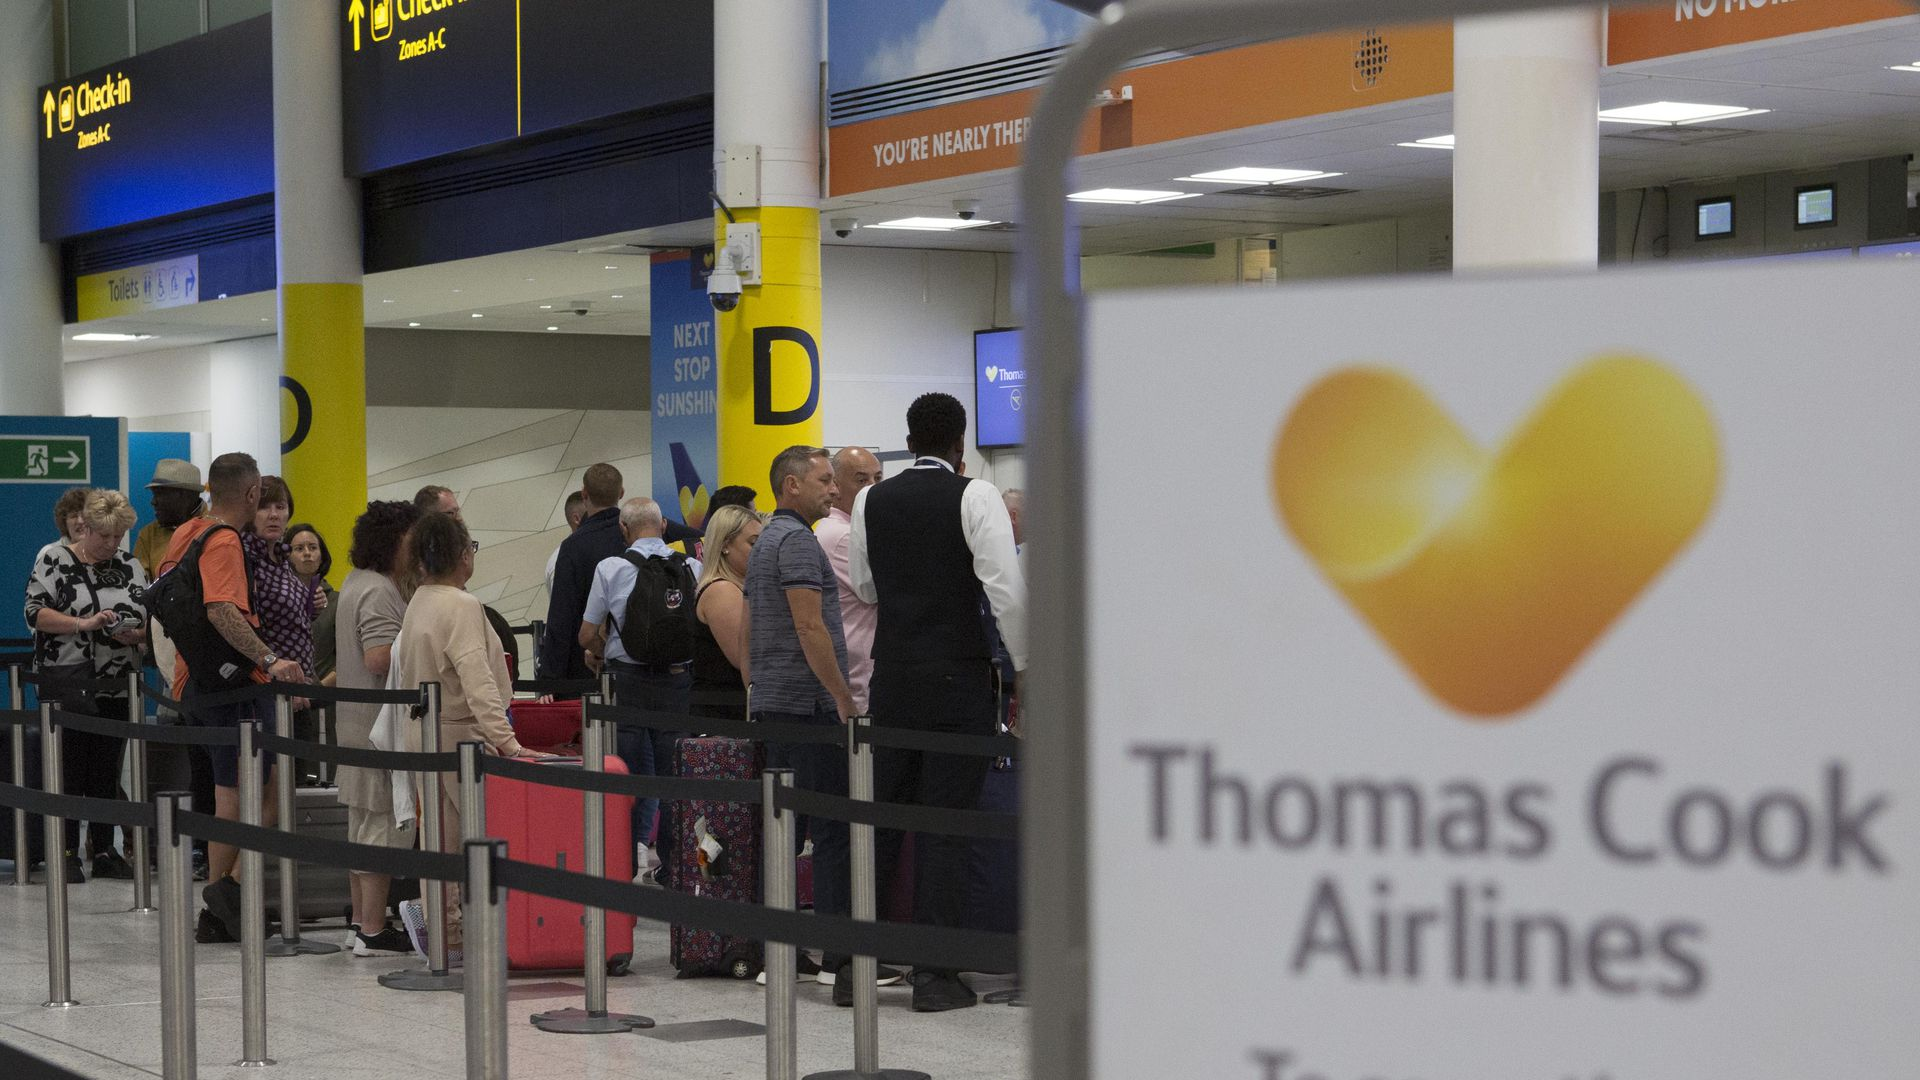 A general view of the Thomas Cook check-in desks in the South Terminal of Gatwick Airport.